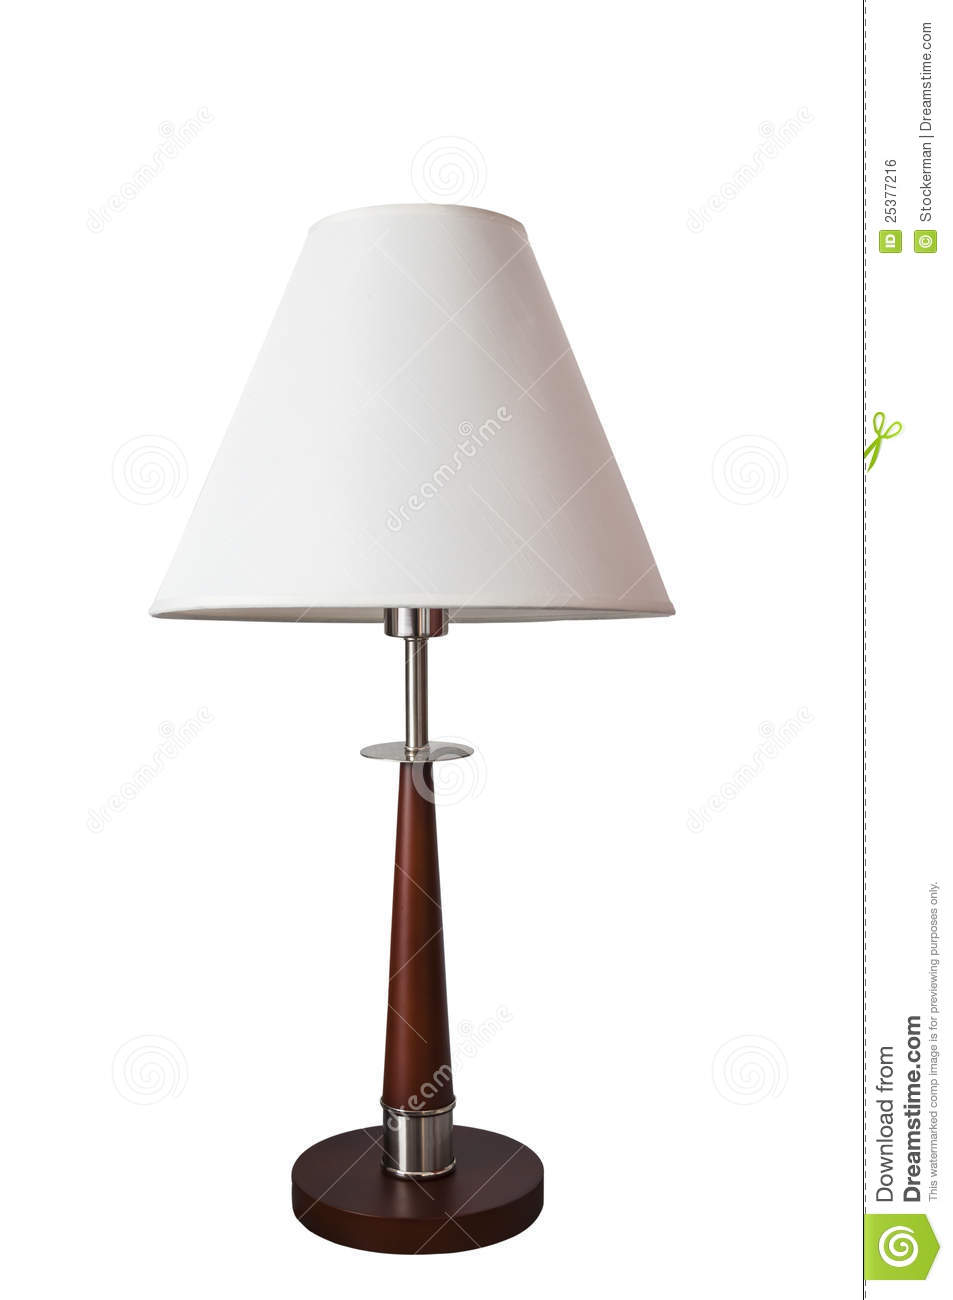 clipping part tall lamp with white shade on white royalty. Black Bedroom Furniture Sets. Home Design Ideas